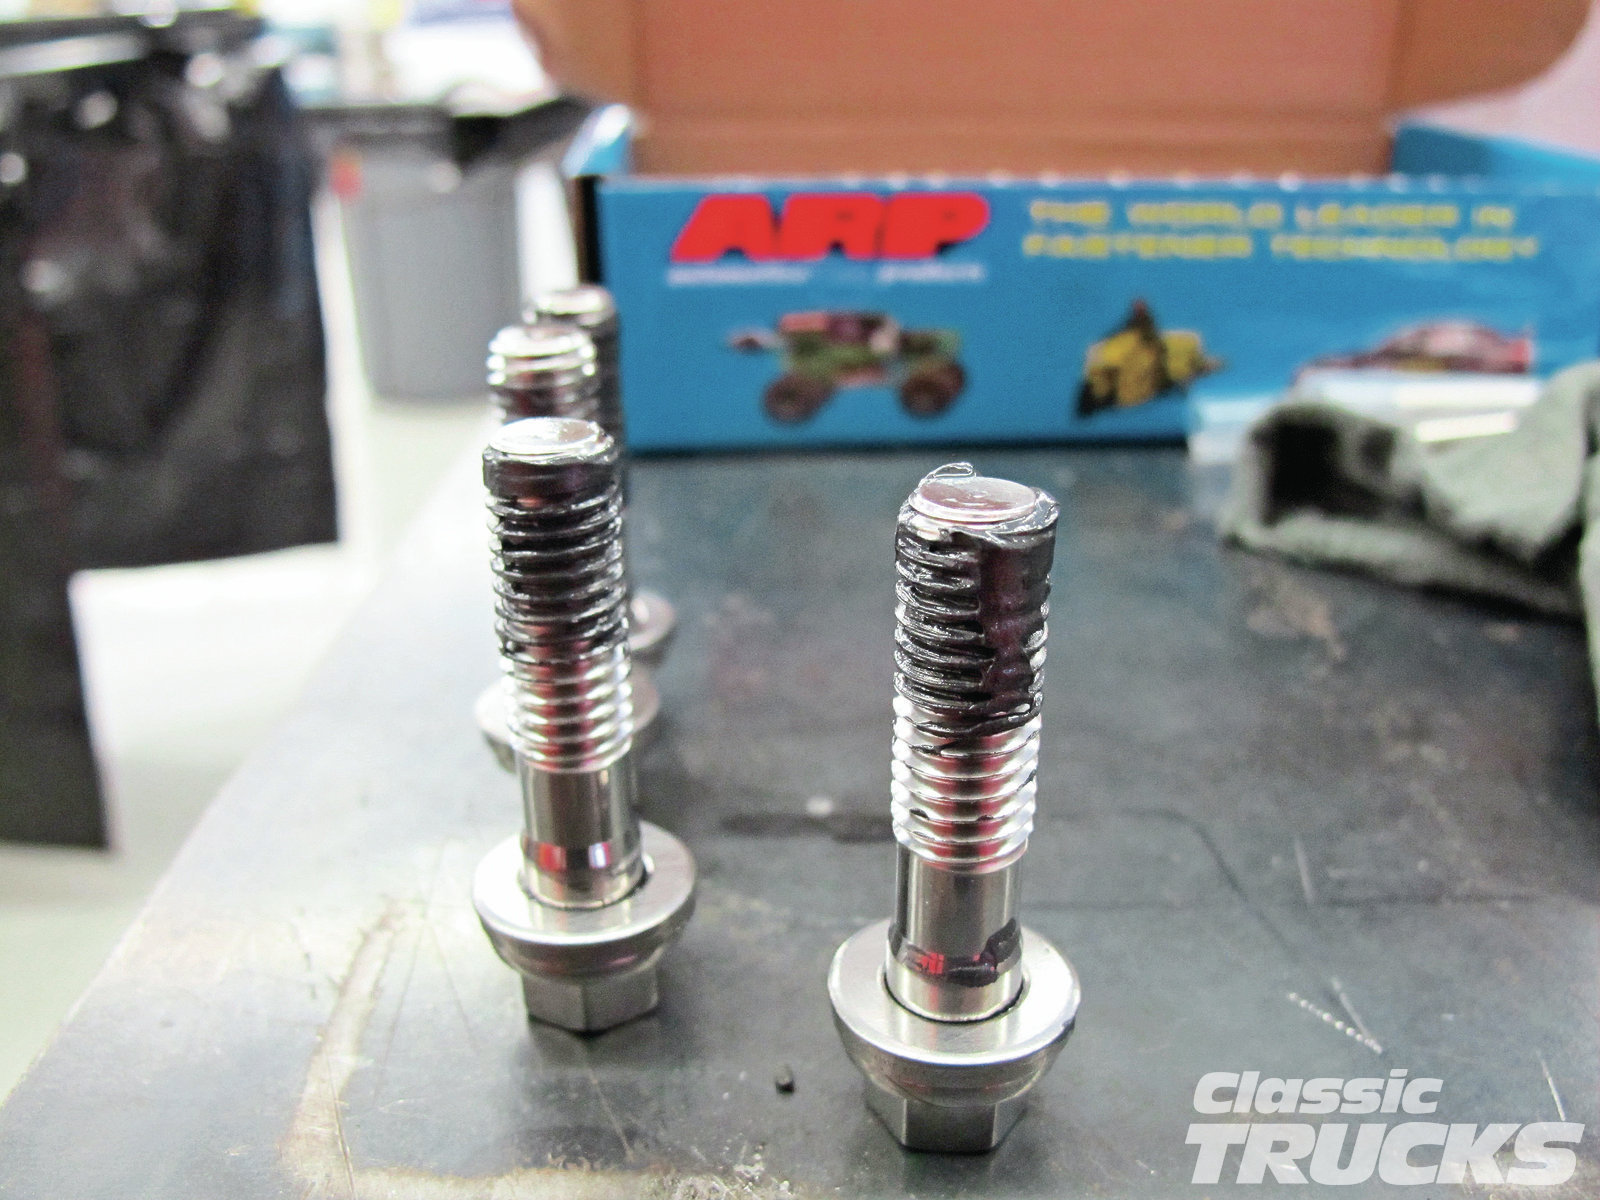 13. The bolts' threads were then covered with ARP Ultra Torque lube to help with torqueing the heads down. I also put a dab of Ultra Torque lube on the bottom of the bolt head and washer so that they would slide off one another and not cause a false bolt torque reading.